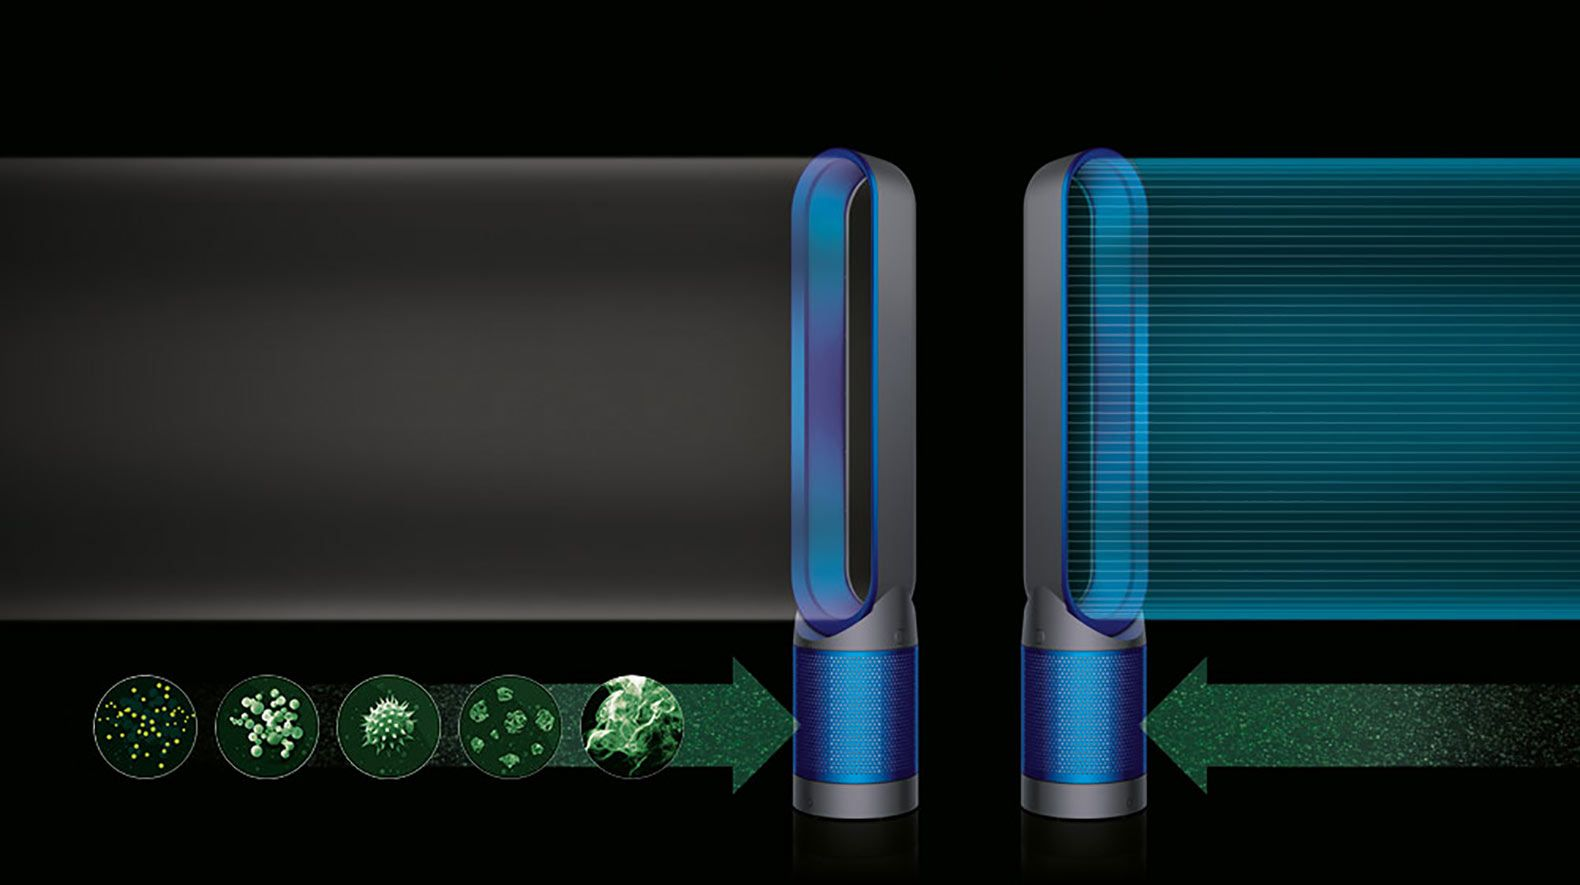 Dyson S Super Quiet Pure Cool Air Purifier Removes 99 95 Of